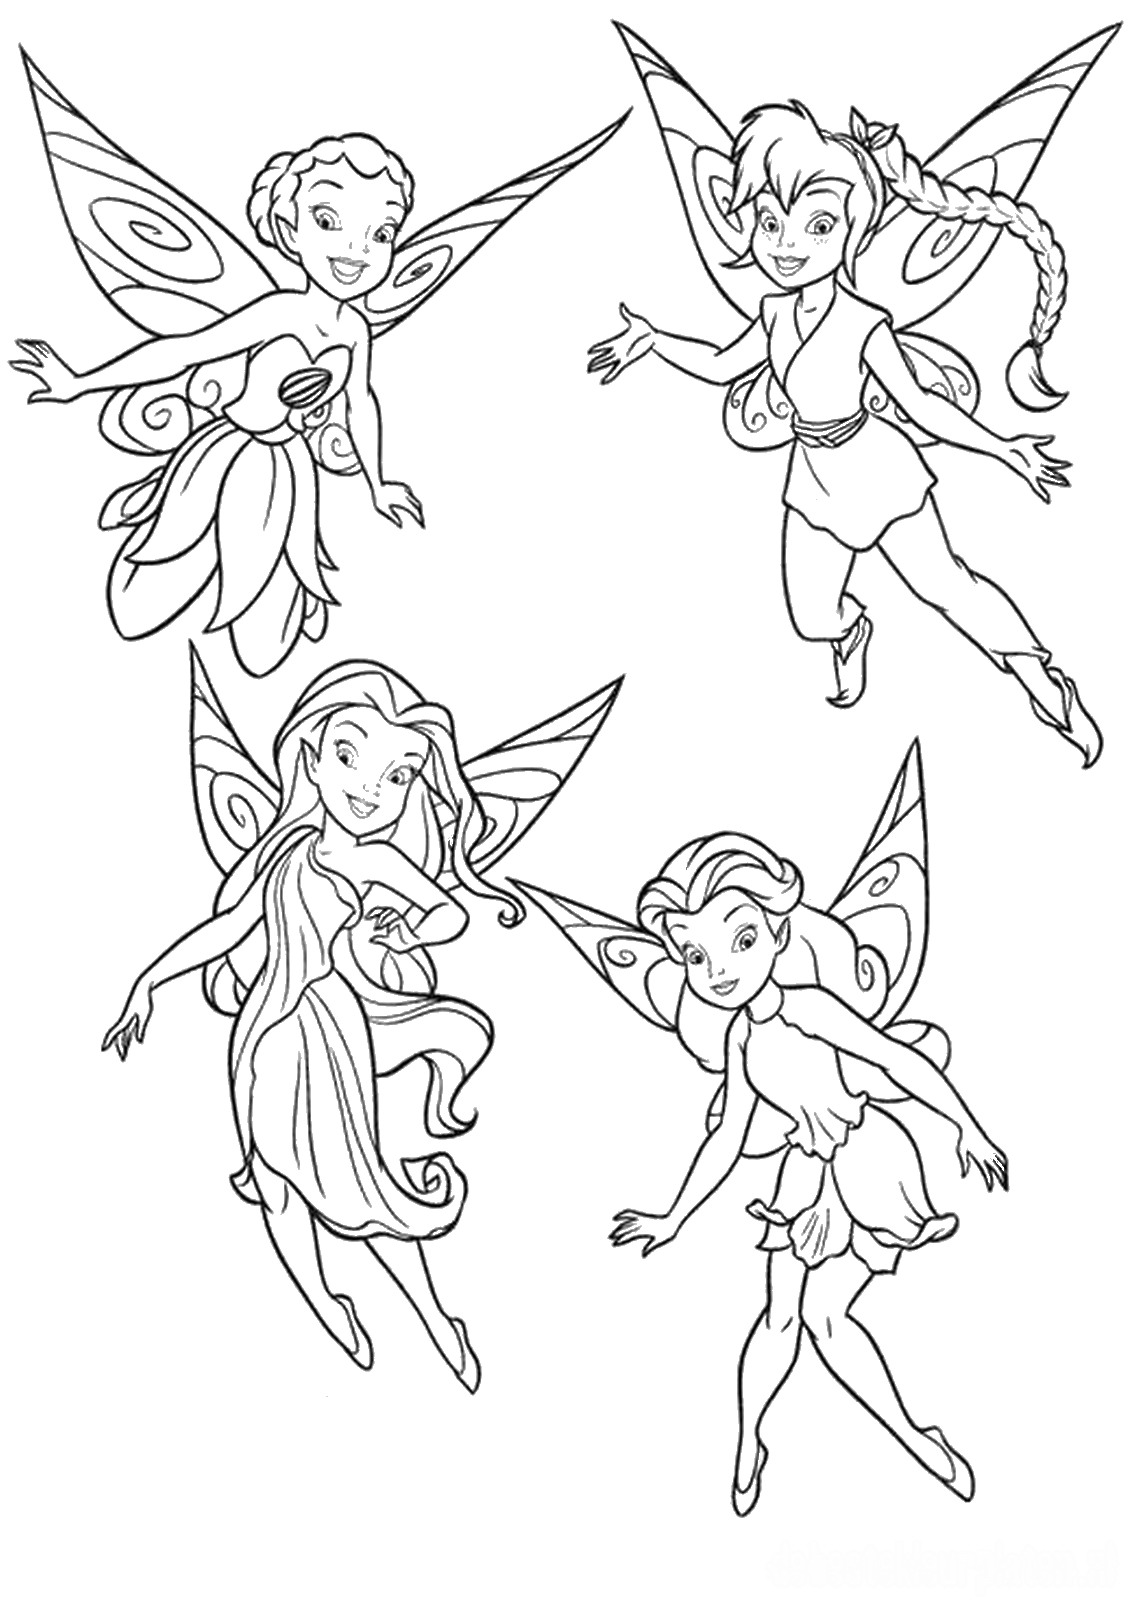 tinkerbell colouring in pictures coloring pages tinkerbell coloring pages and clip art colouring in tinkerbell pictures